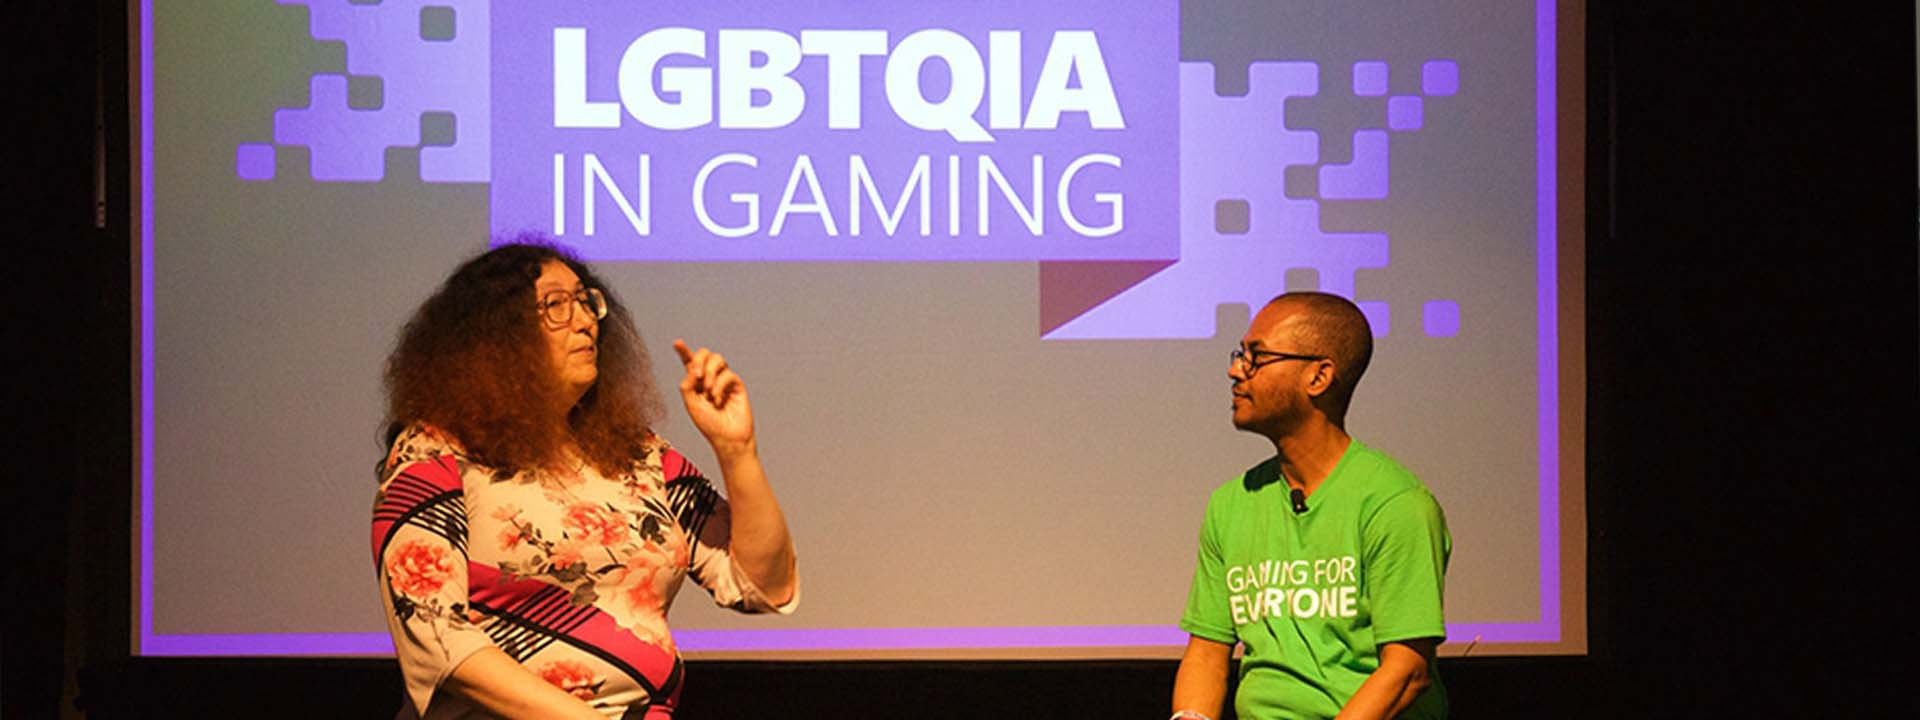 Two gaming industry professionals from the LGBTQIA community speak on stage